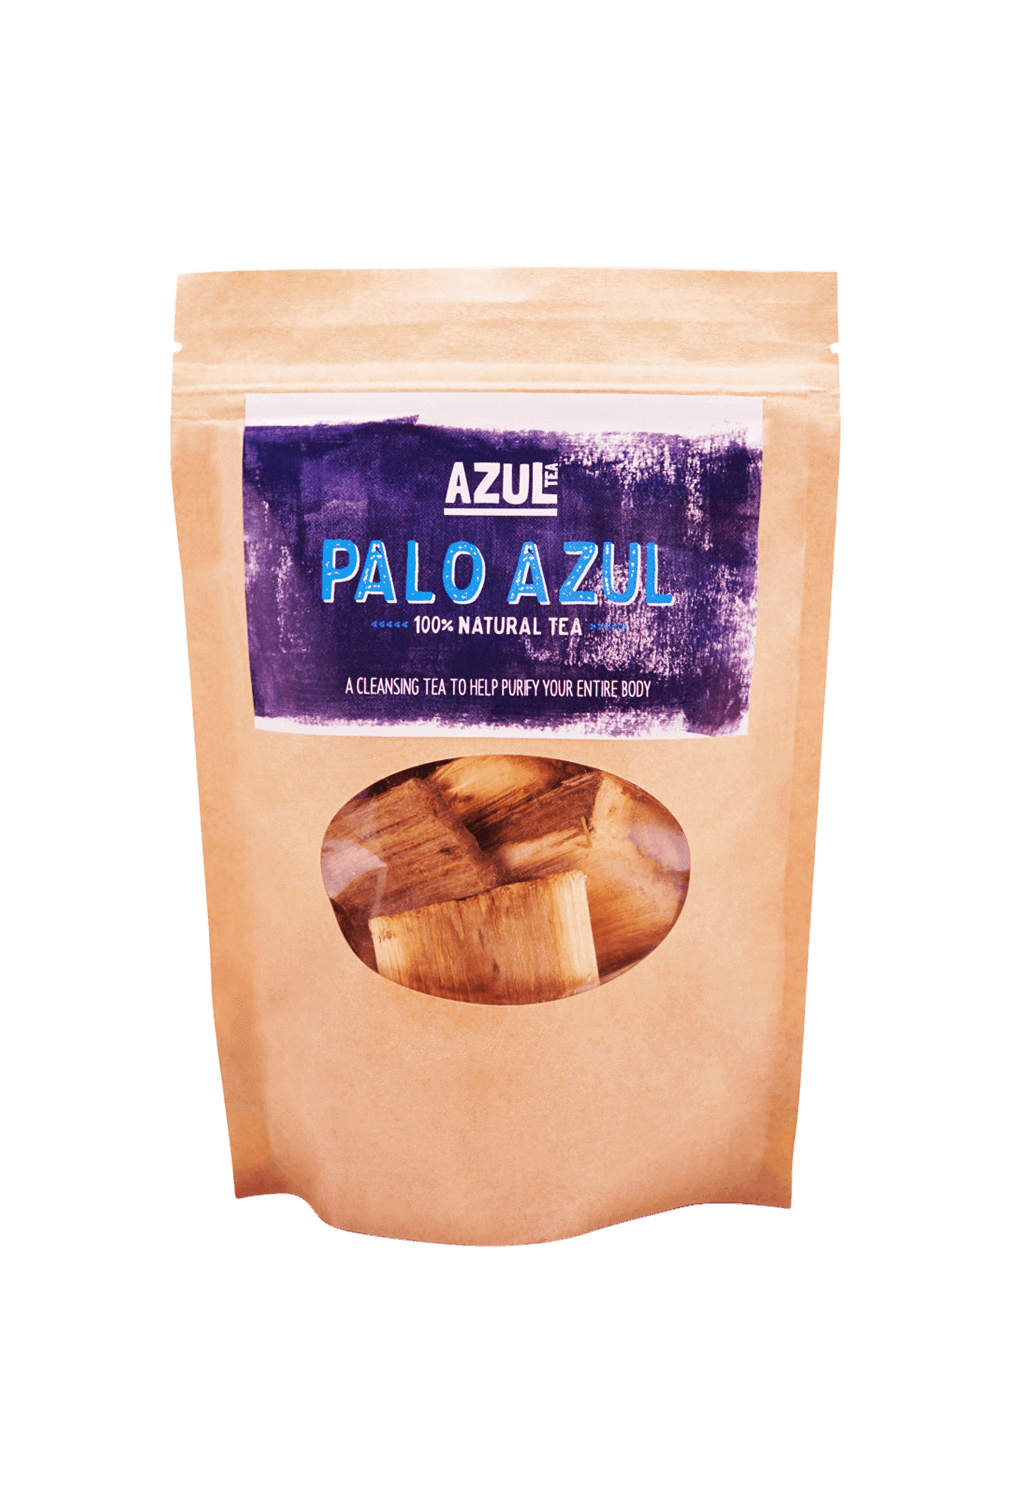 Front of Palo Azul packaging from Azul Tea